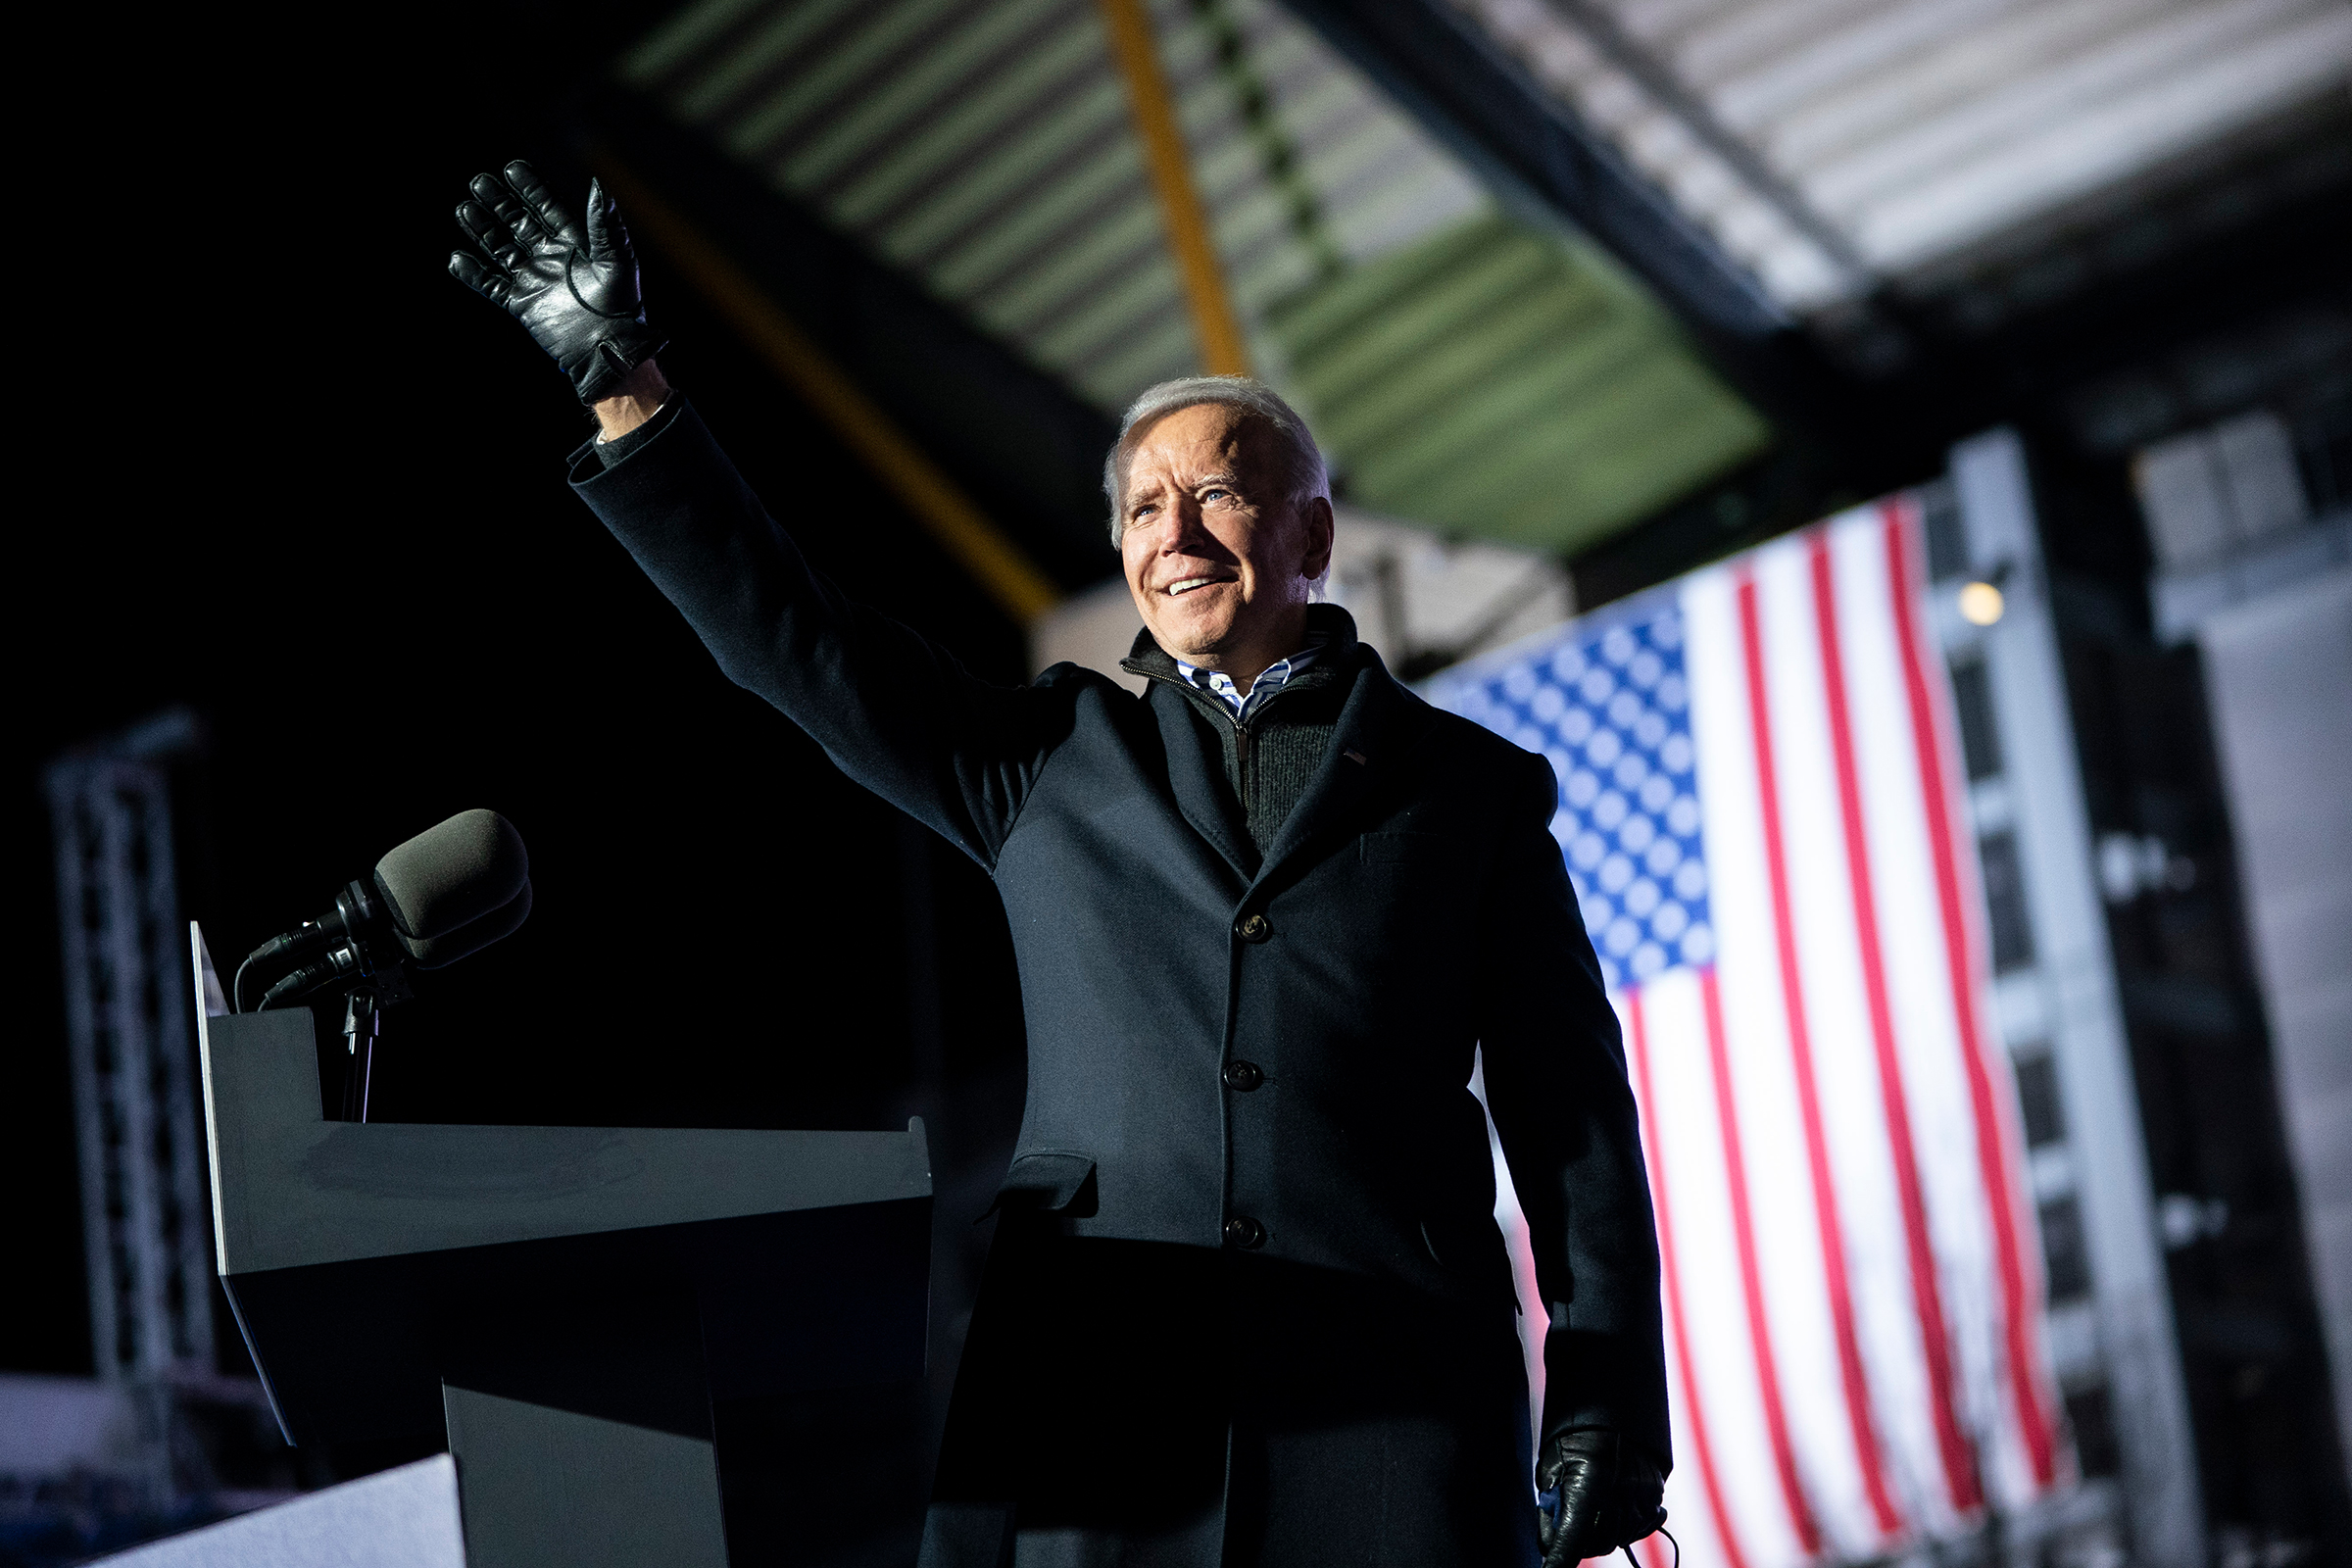 Joe Biden waves to the crowd as he arrives at a drive-in campaign rally at Heinz Field in Pittsburgh on Nov. 2, 2020.